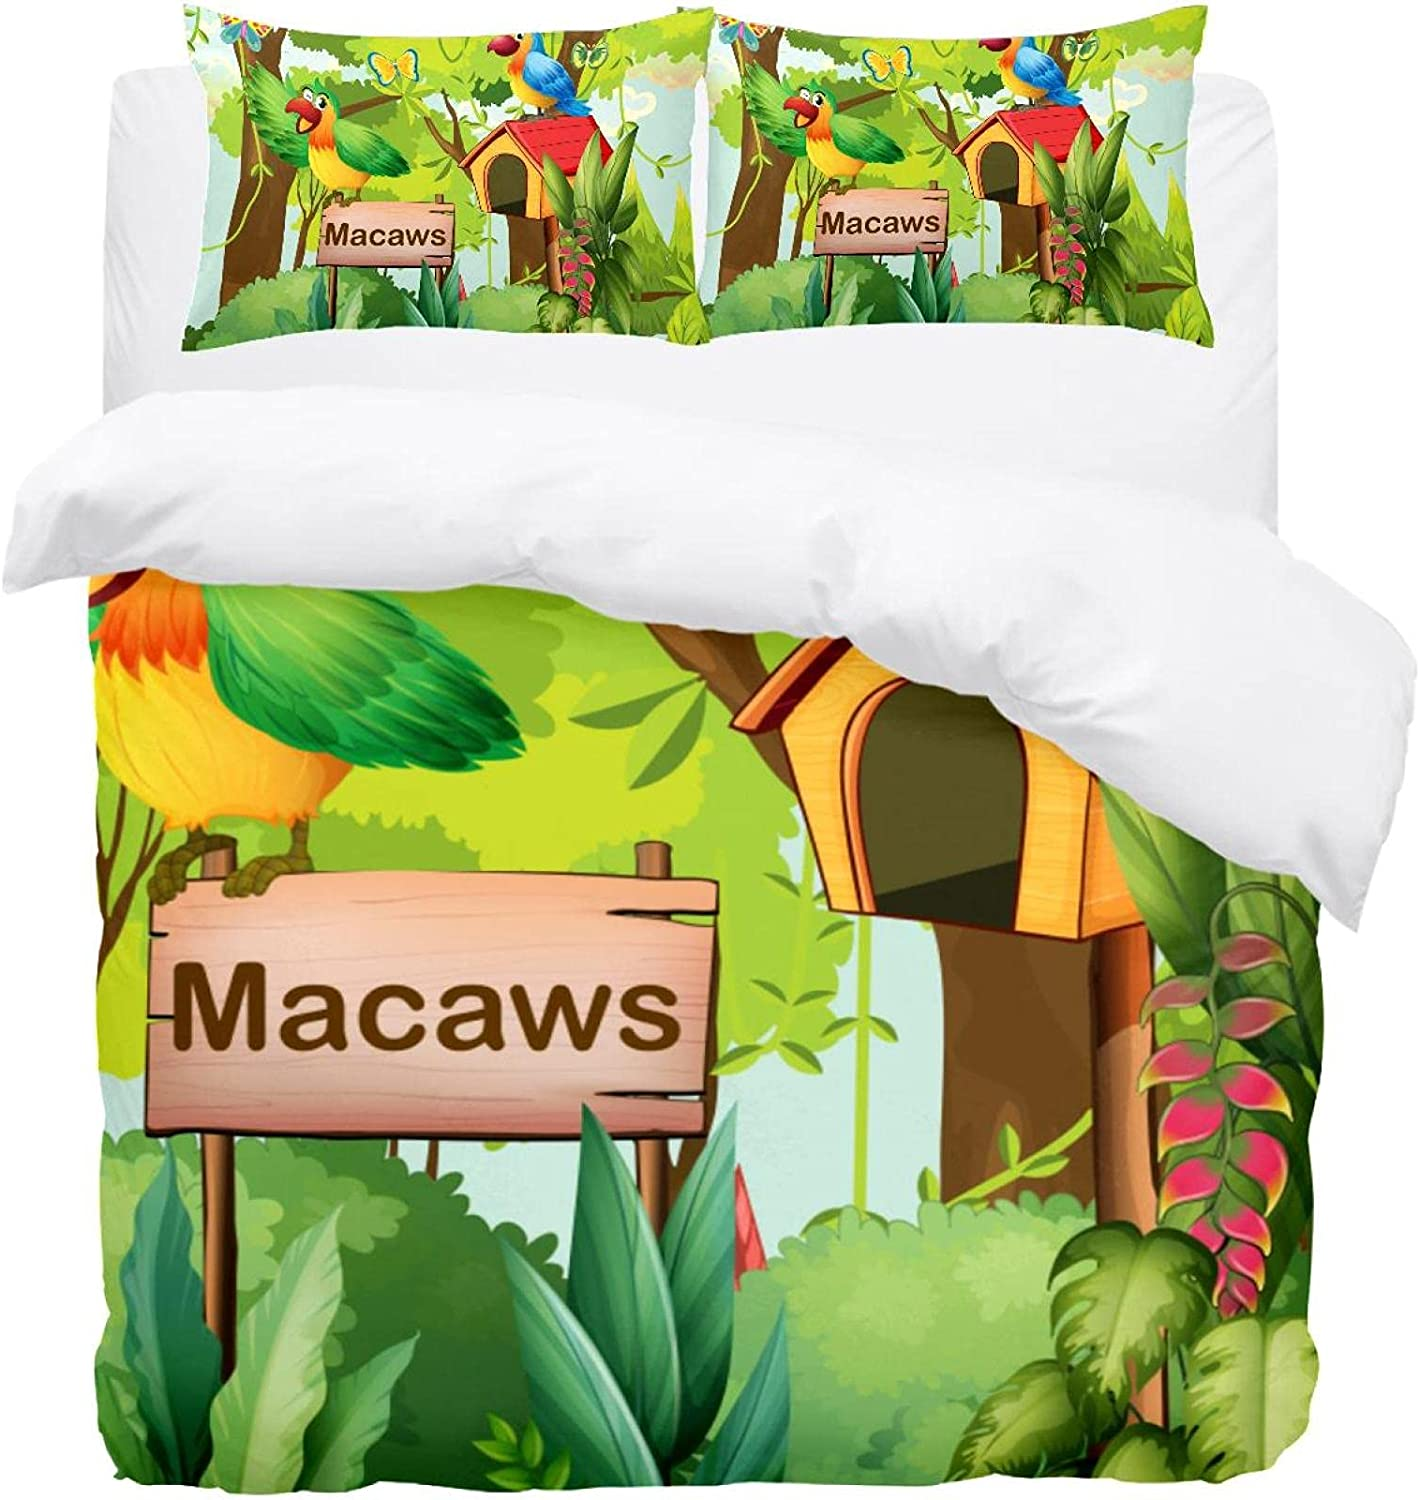 3PCS Bed High quality new Sheet Set Forest free shipping Printed Signboard with Macaws Mailbox